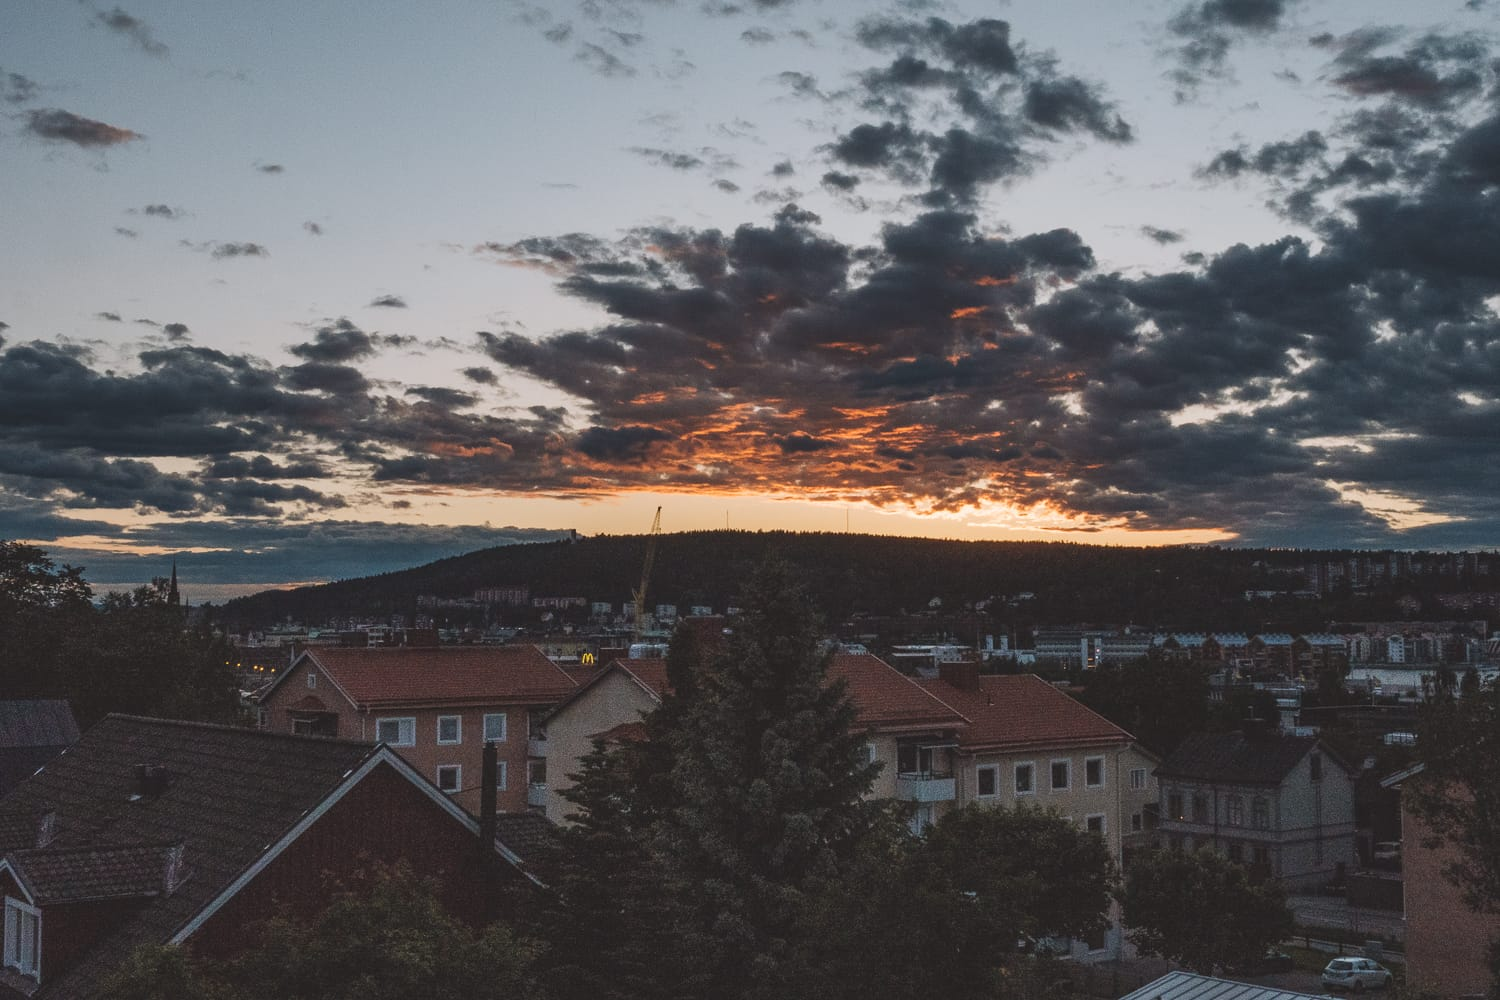 Sundsvall after sunset